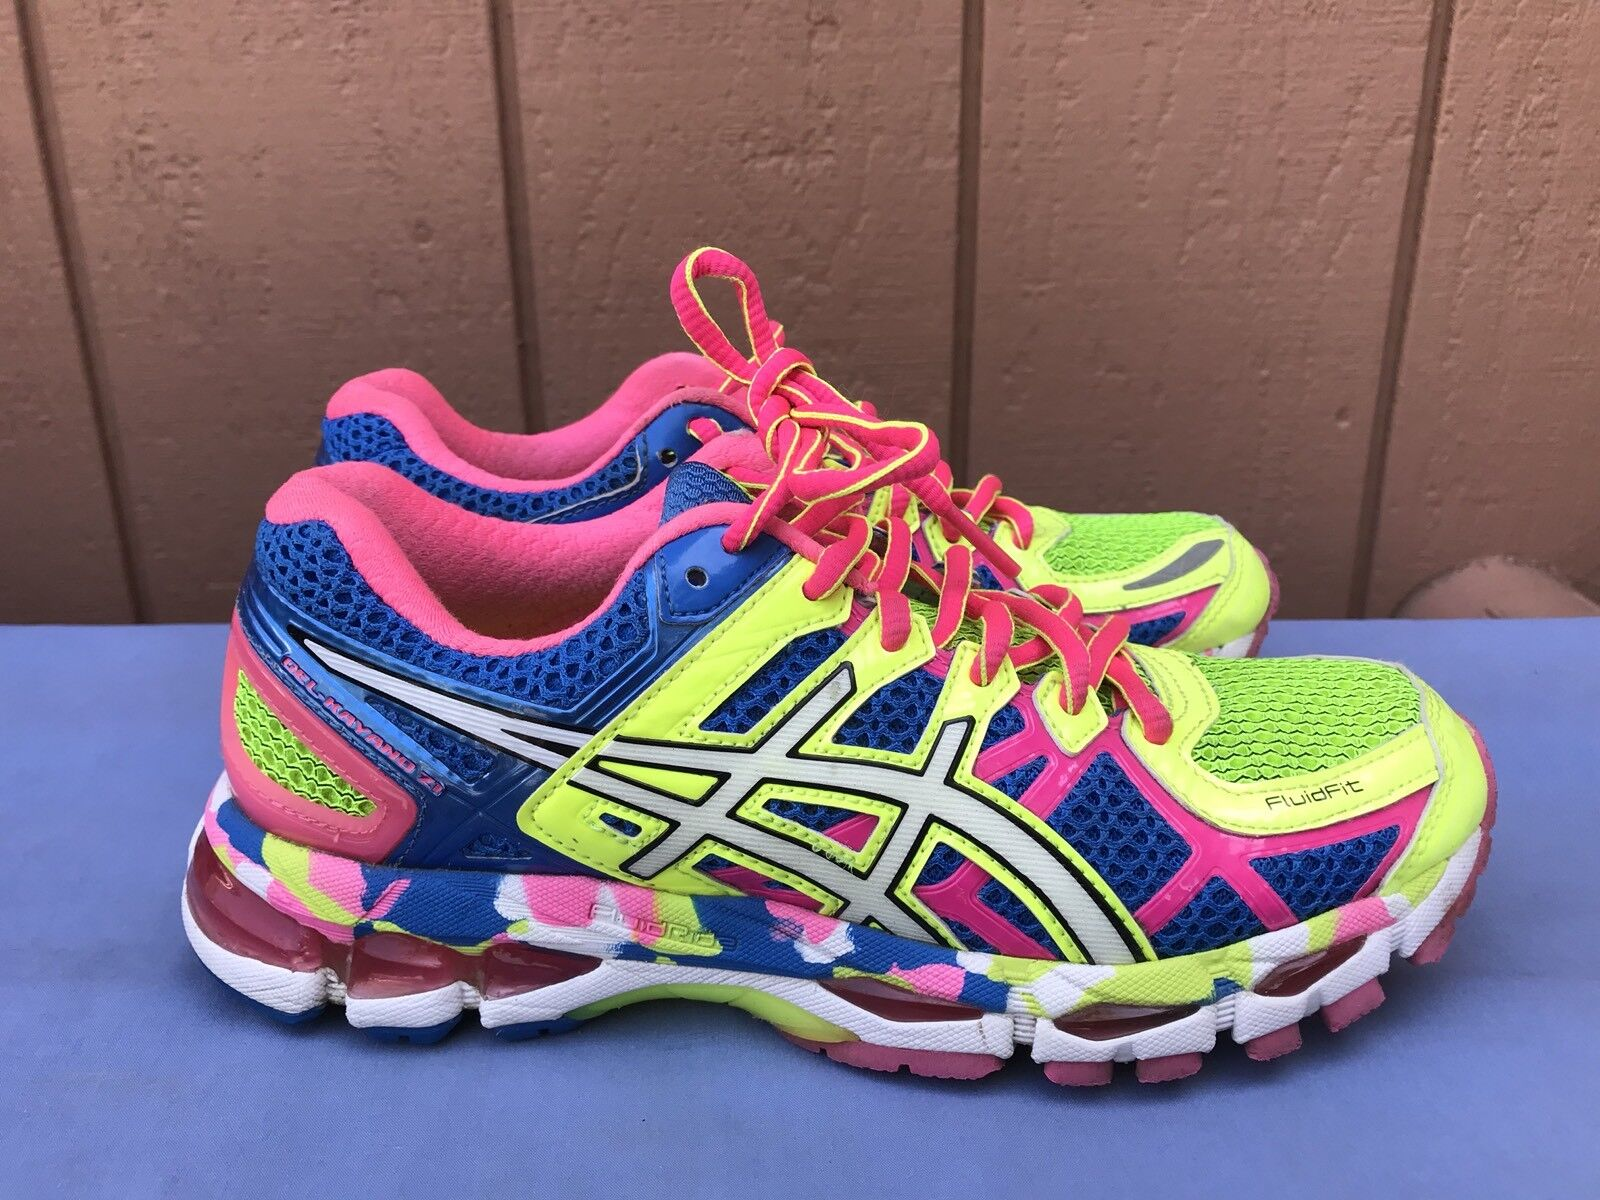 EUC RARE ASICS GEL KAYANO 21 RUNNING SHOES SIZE US 6.5 blueE PINK YELLOW T4H7N A5